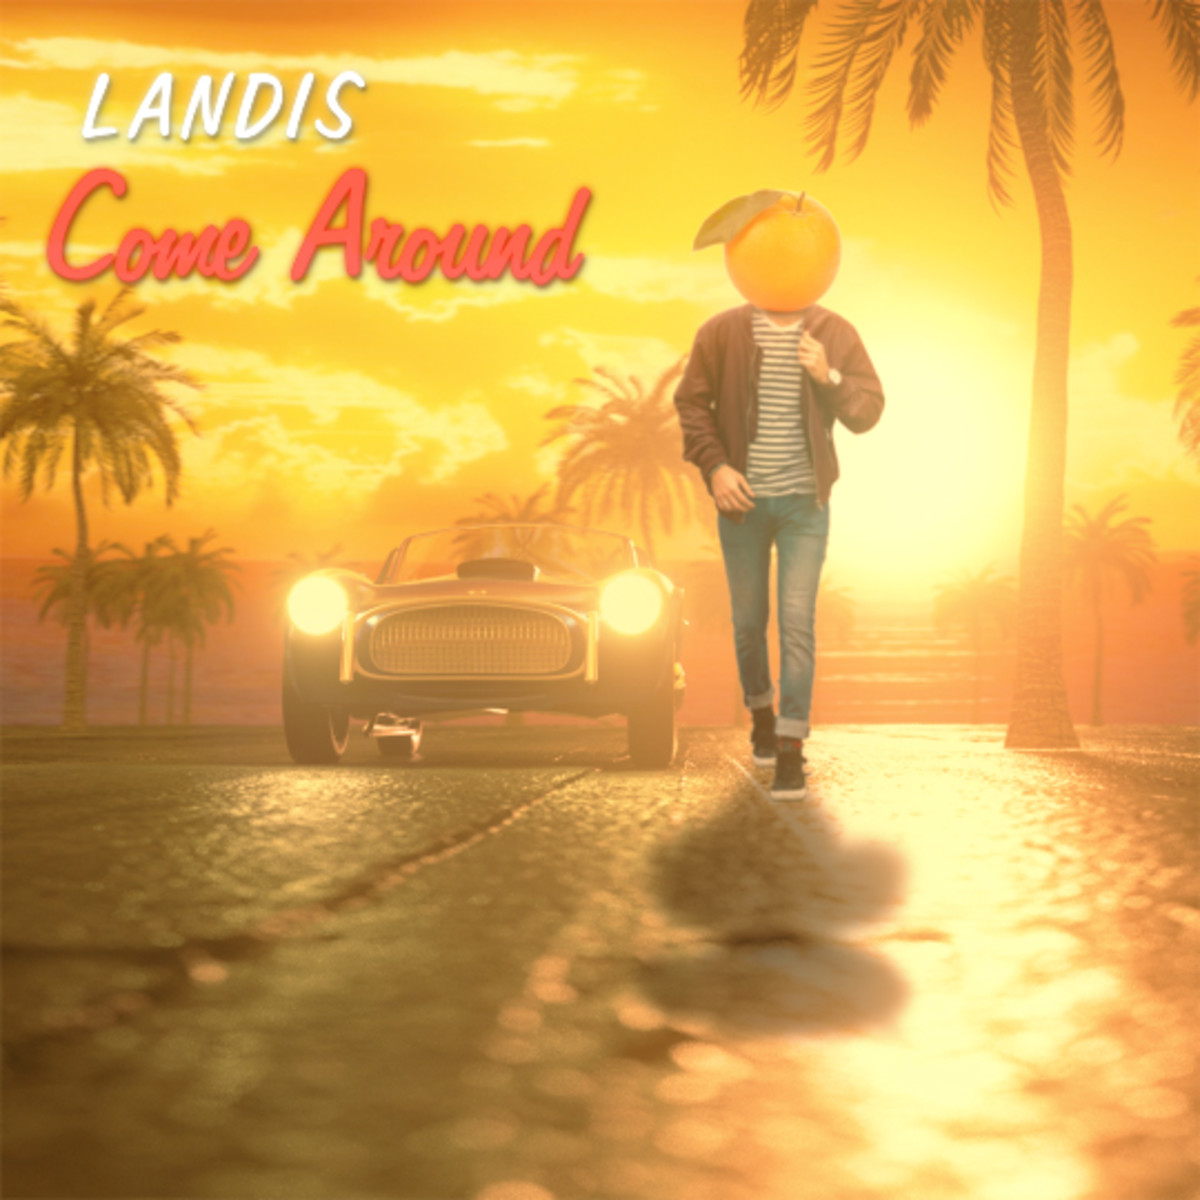 Landis - Come Around (Out Now on Fresh Squeeze Music)